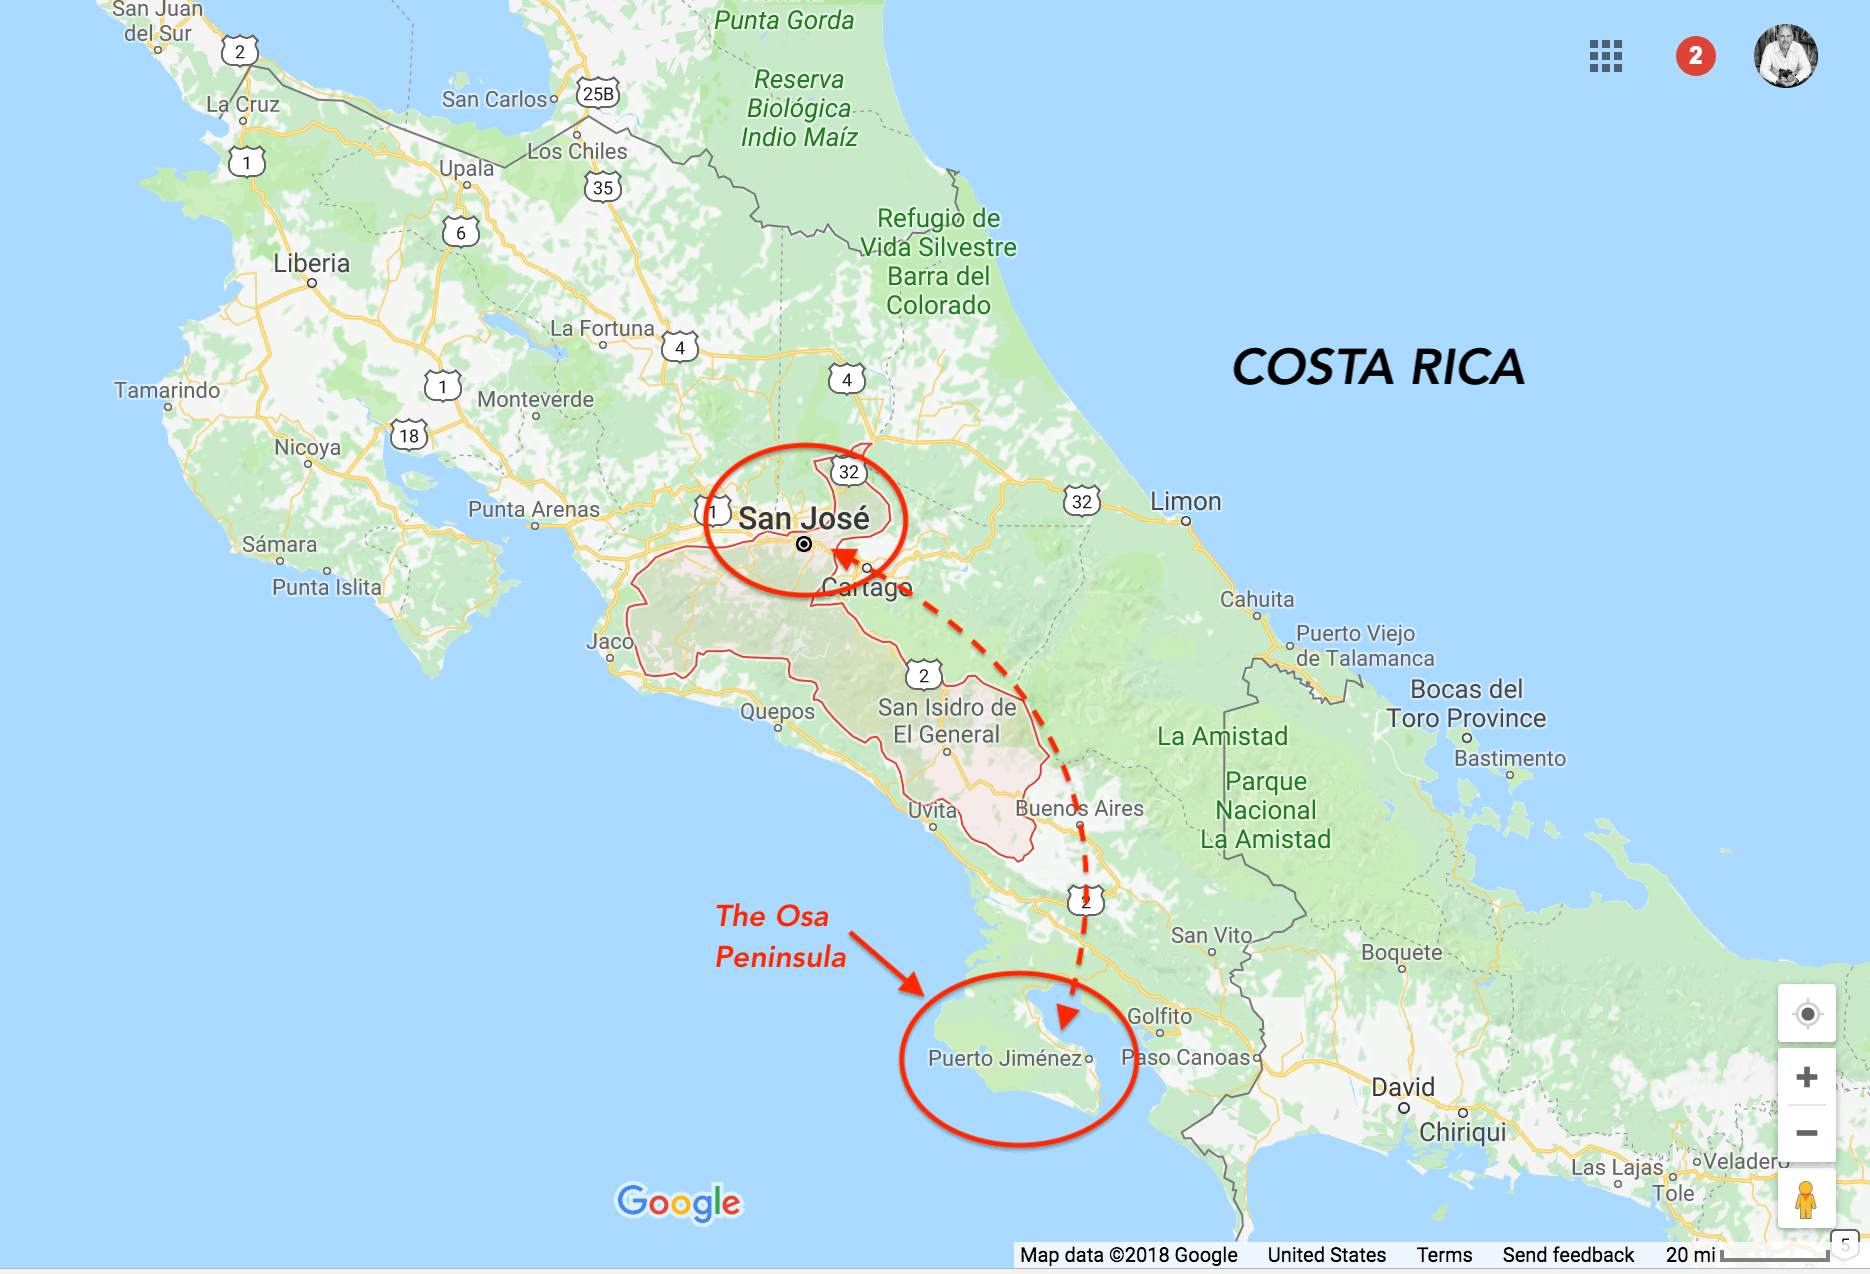 Map of Ralph Velasco's Costa Rica Explorer trip for June 2019.